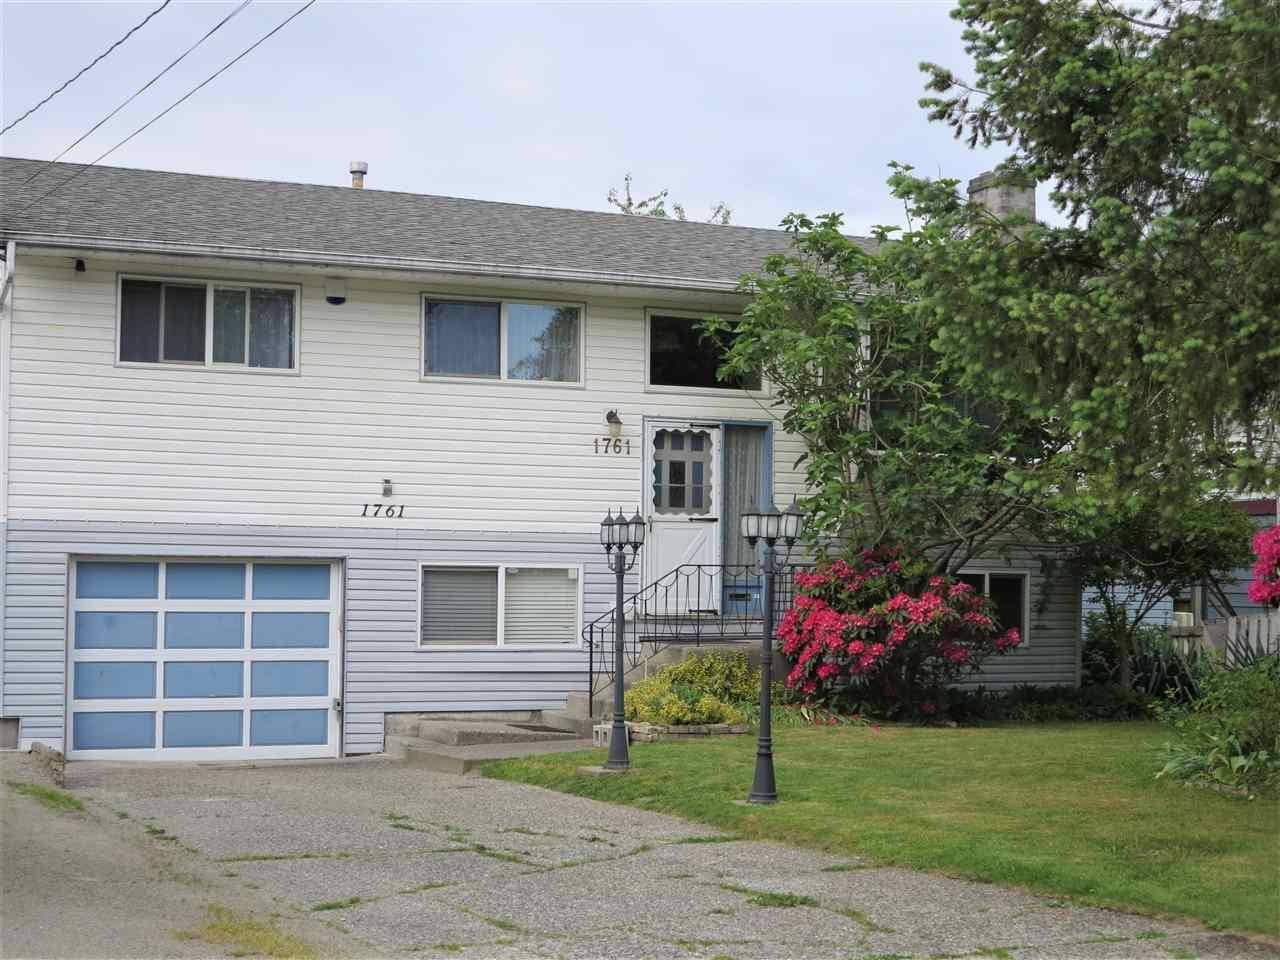 Main Photo: 1761 LANGAN Avenue in Port Coquitlam: Central Pt Coquitlam House for sale : MLS®# R2269766